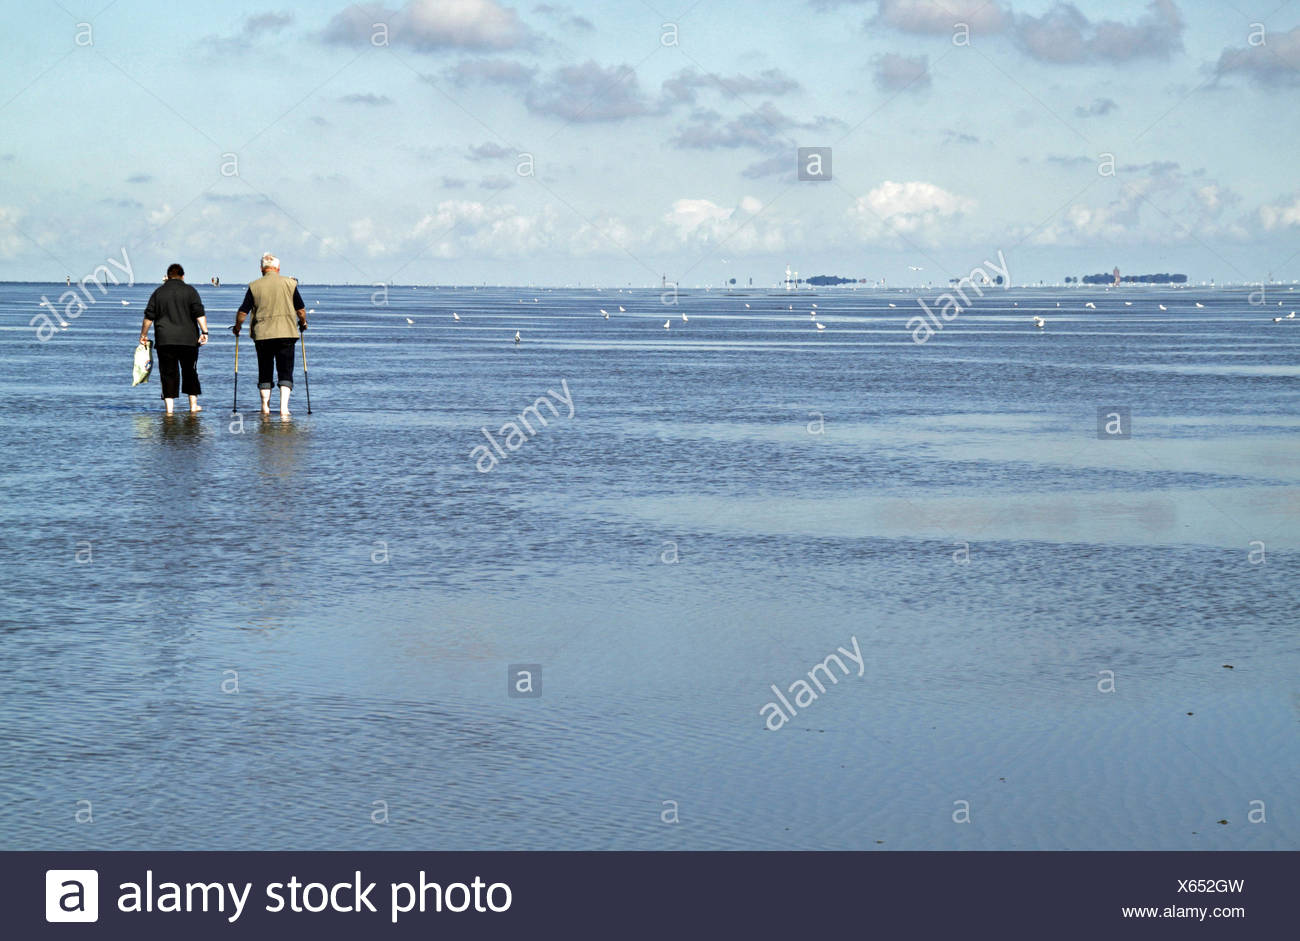 Cuxhaven Germany People Low Tide Stockfotos  Cuxhaven